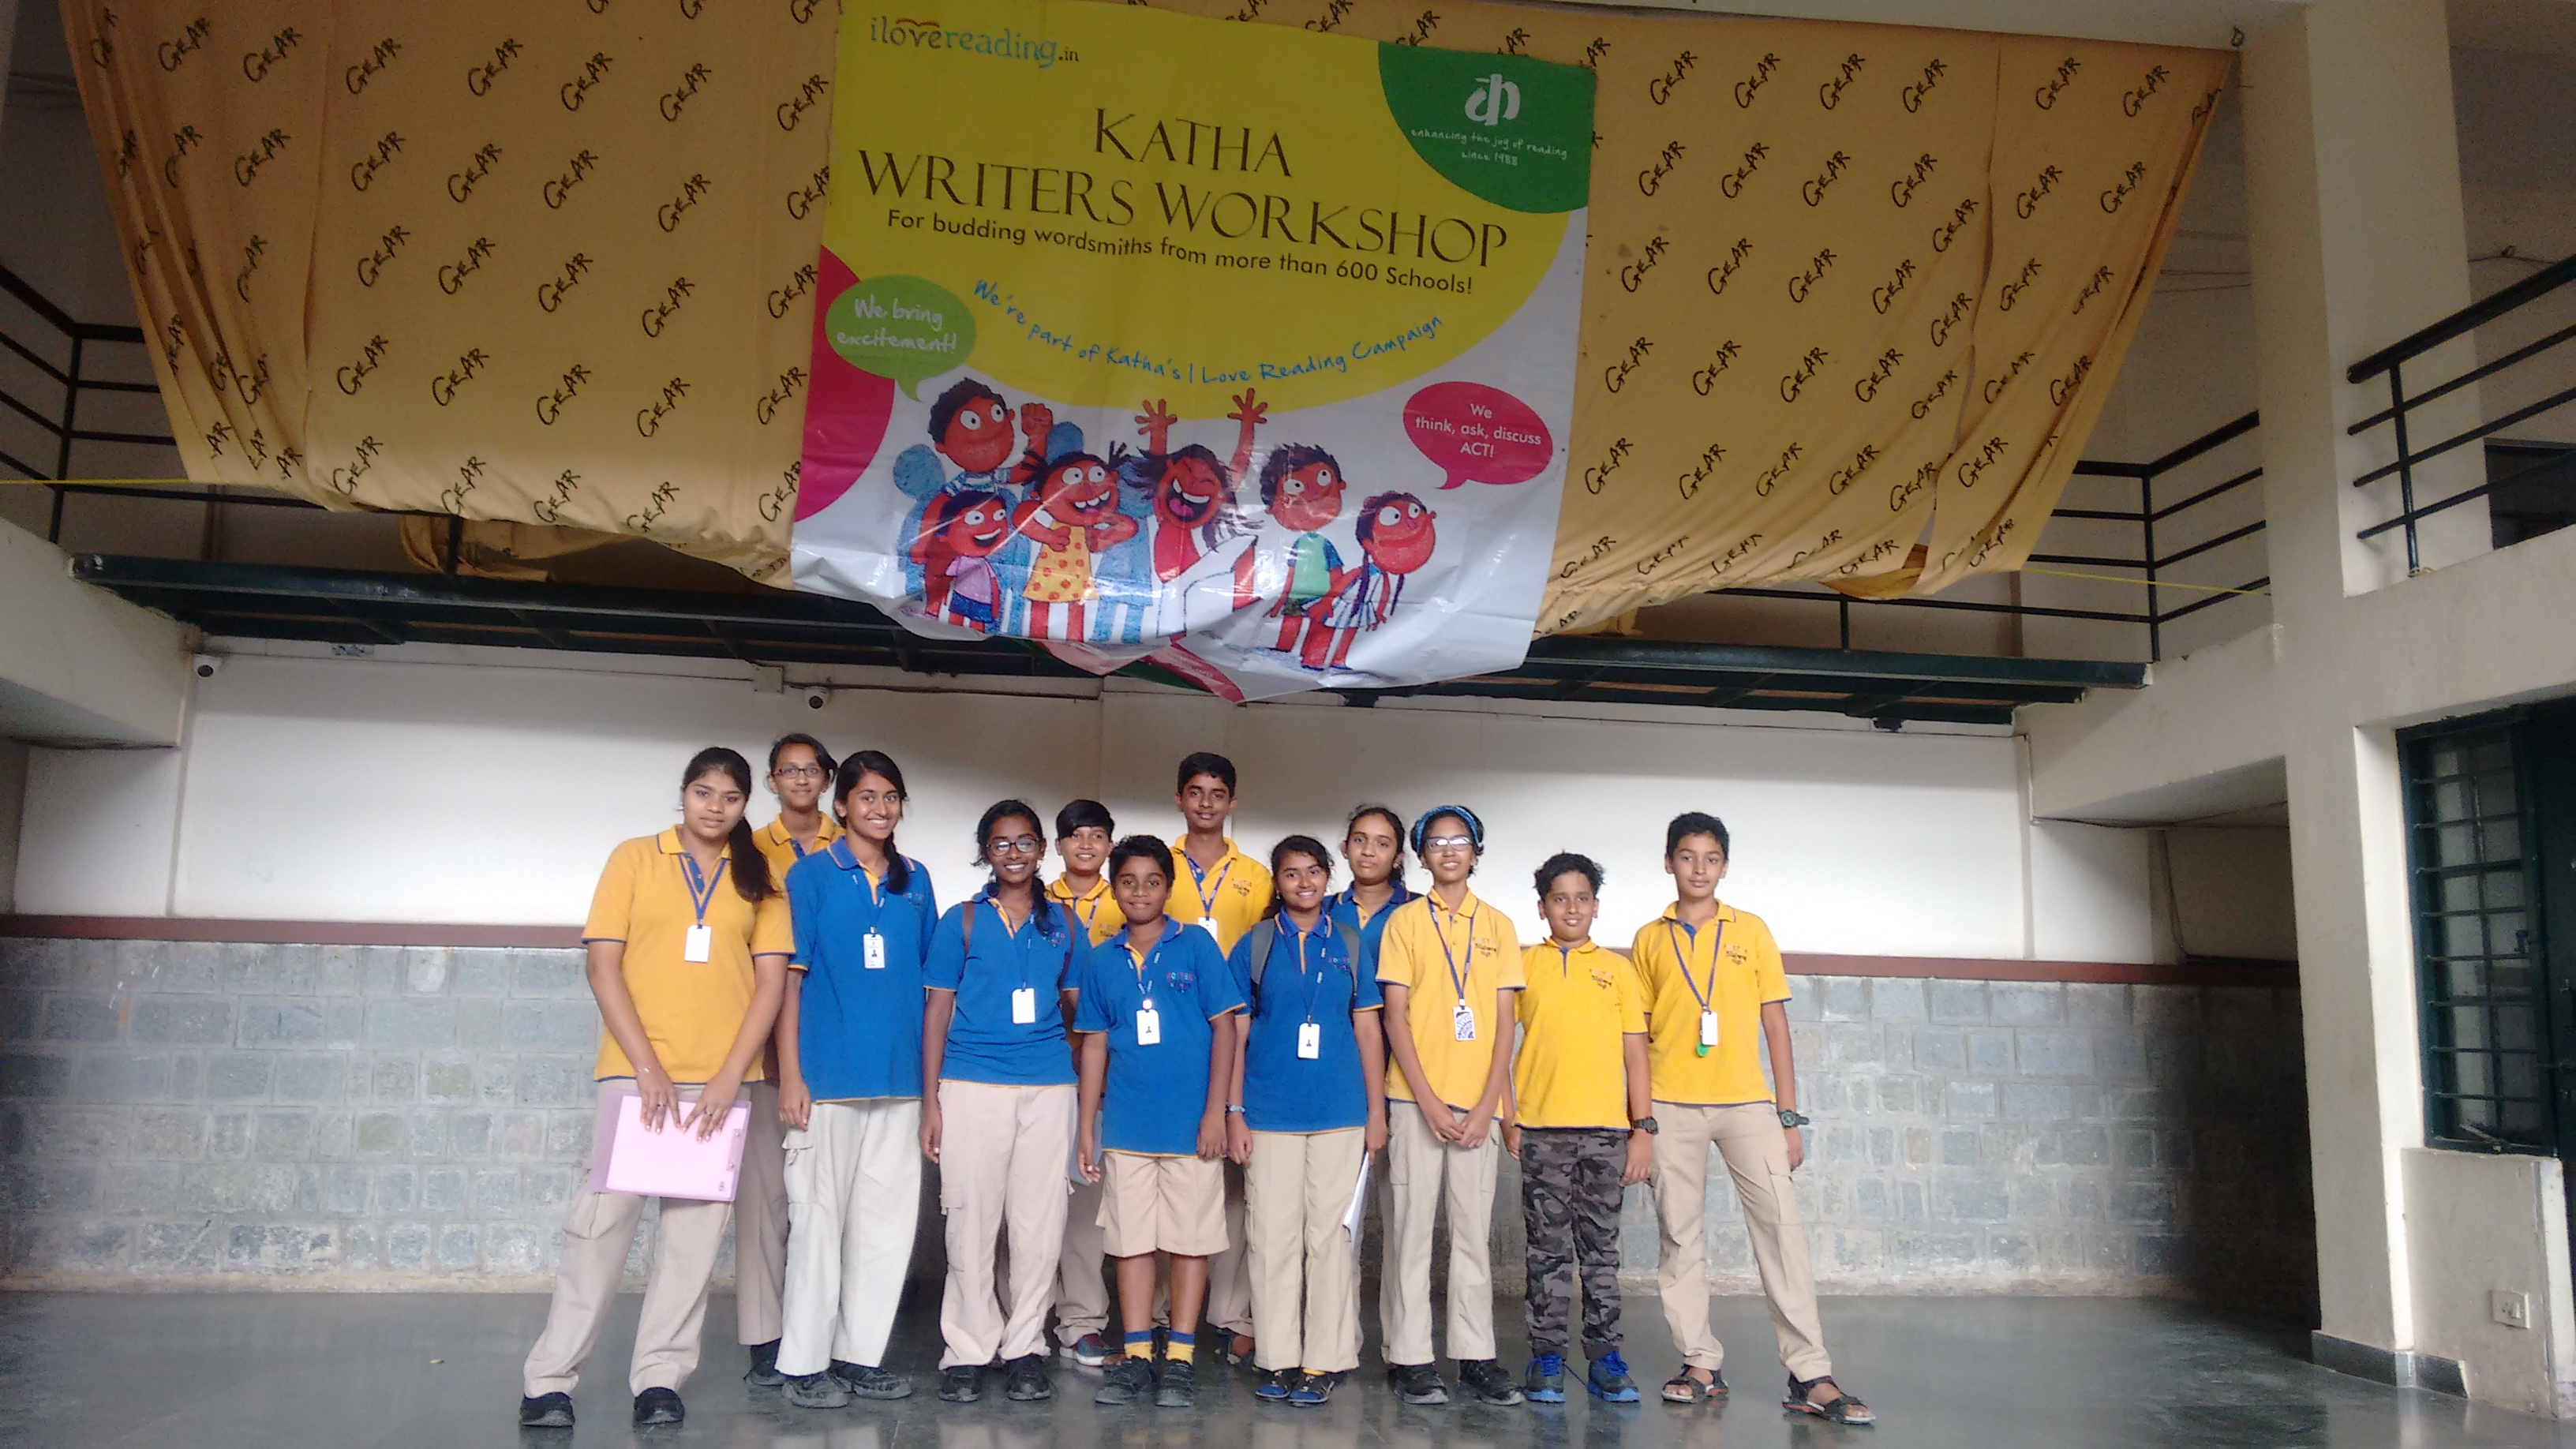 katha writers workshop